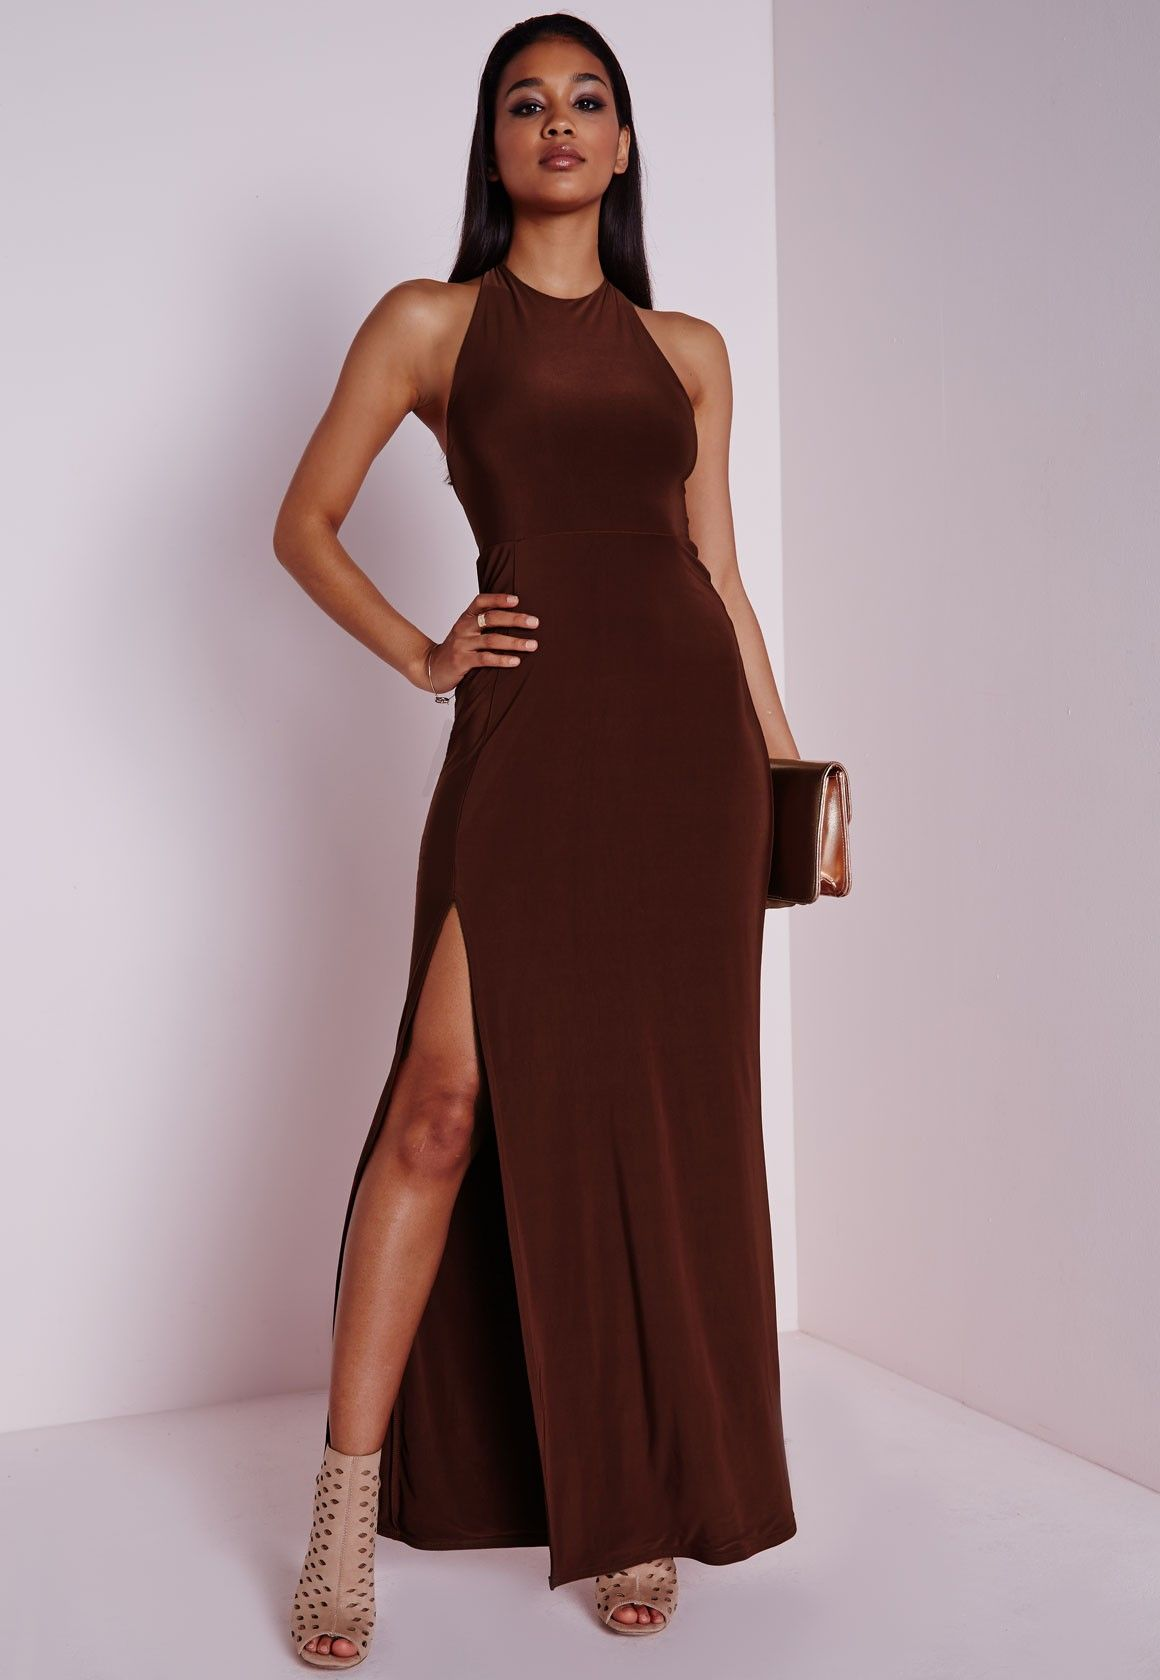 Slinky Side Split Maxi Dress Chocolate Brown - Dresses - Maxi ...